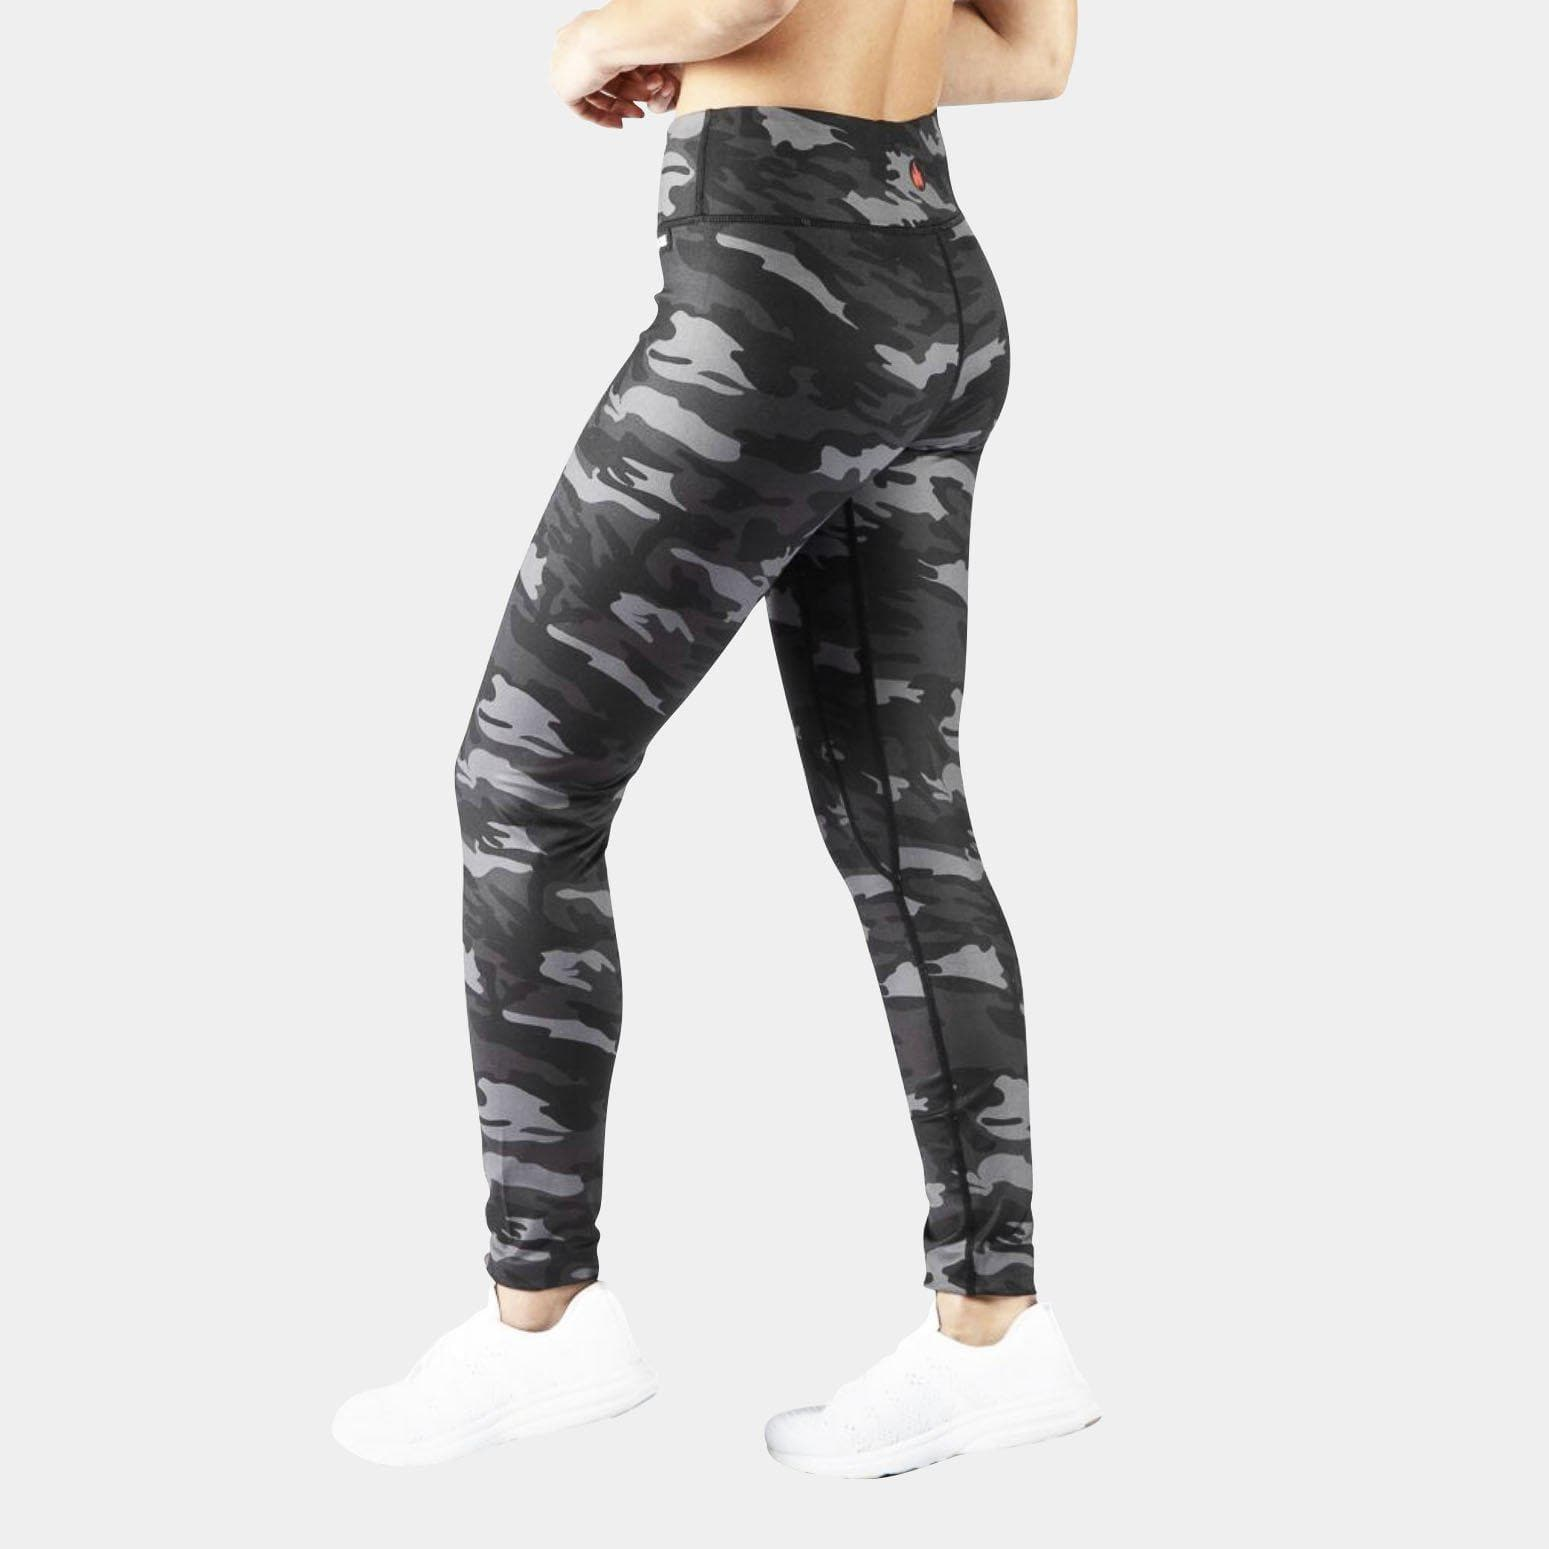 FIRE Booty Leggings - BLACK CAMO